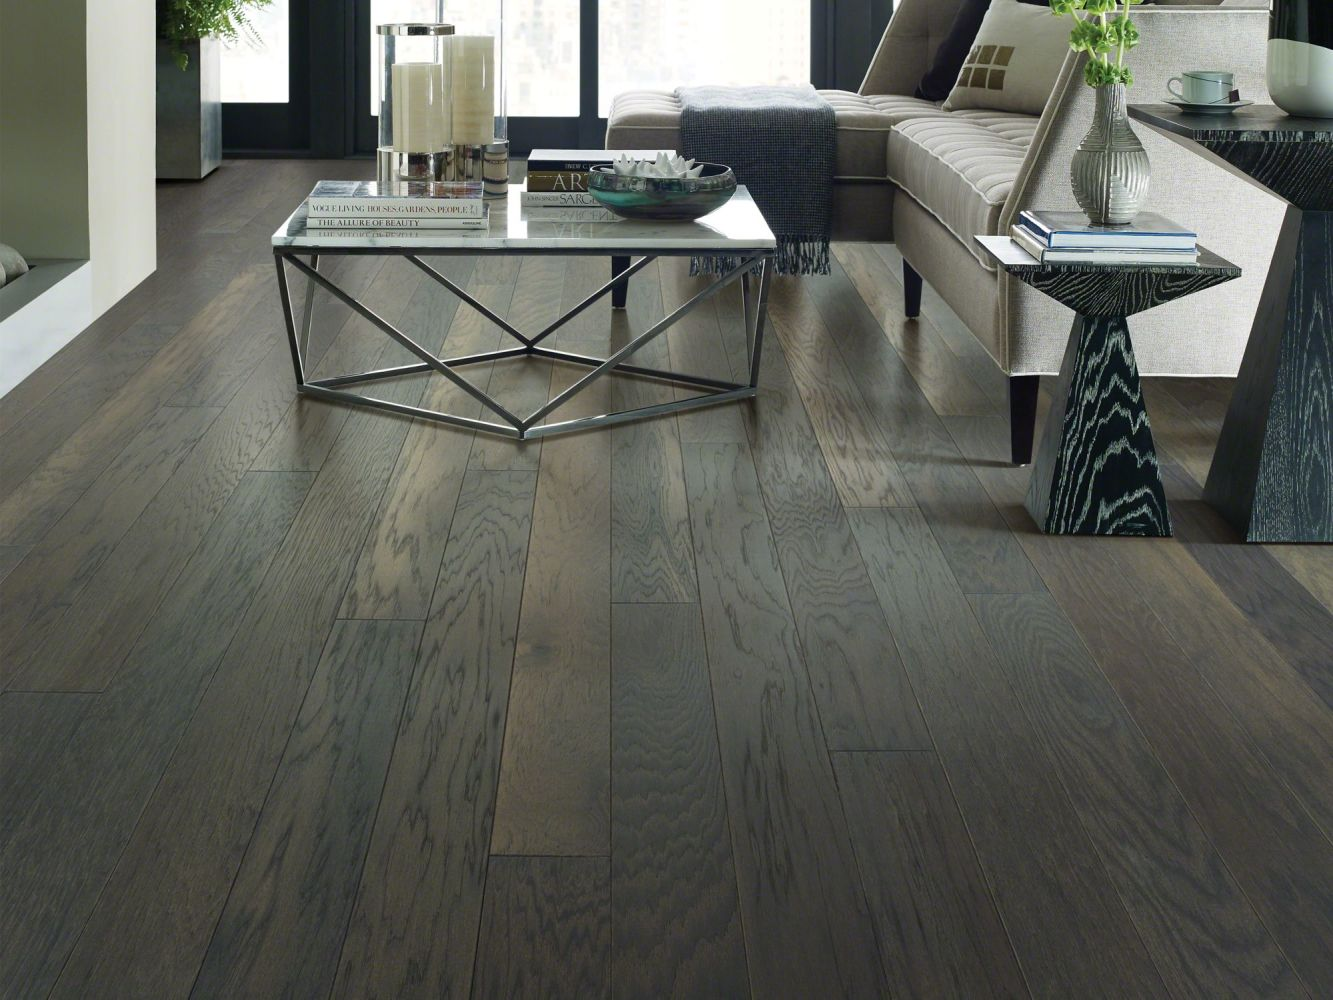 Shaw Floors Home Fn Gold Hardwood Campbell Creek Brushed Sable 09022_HW670